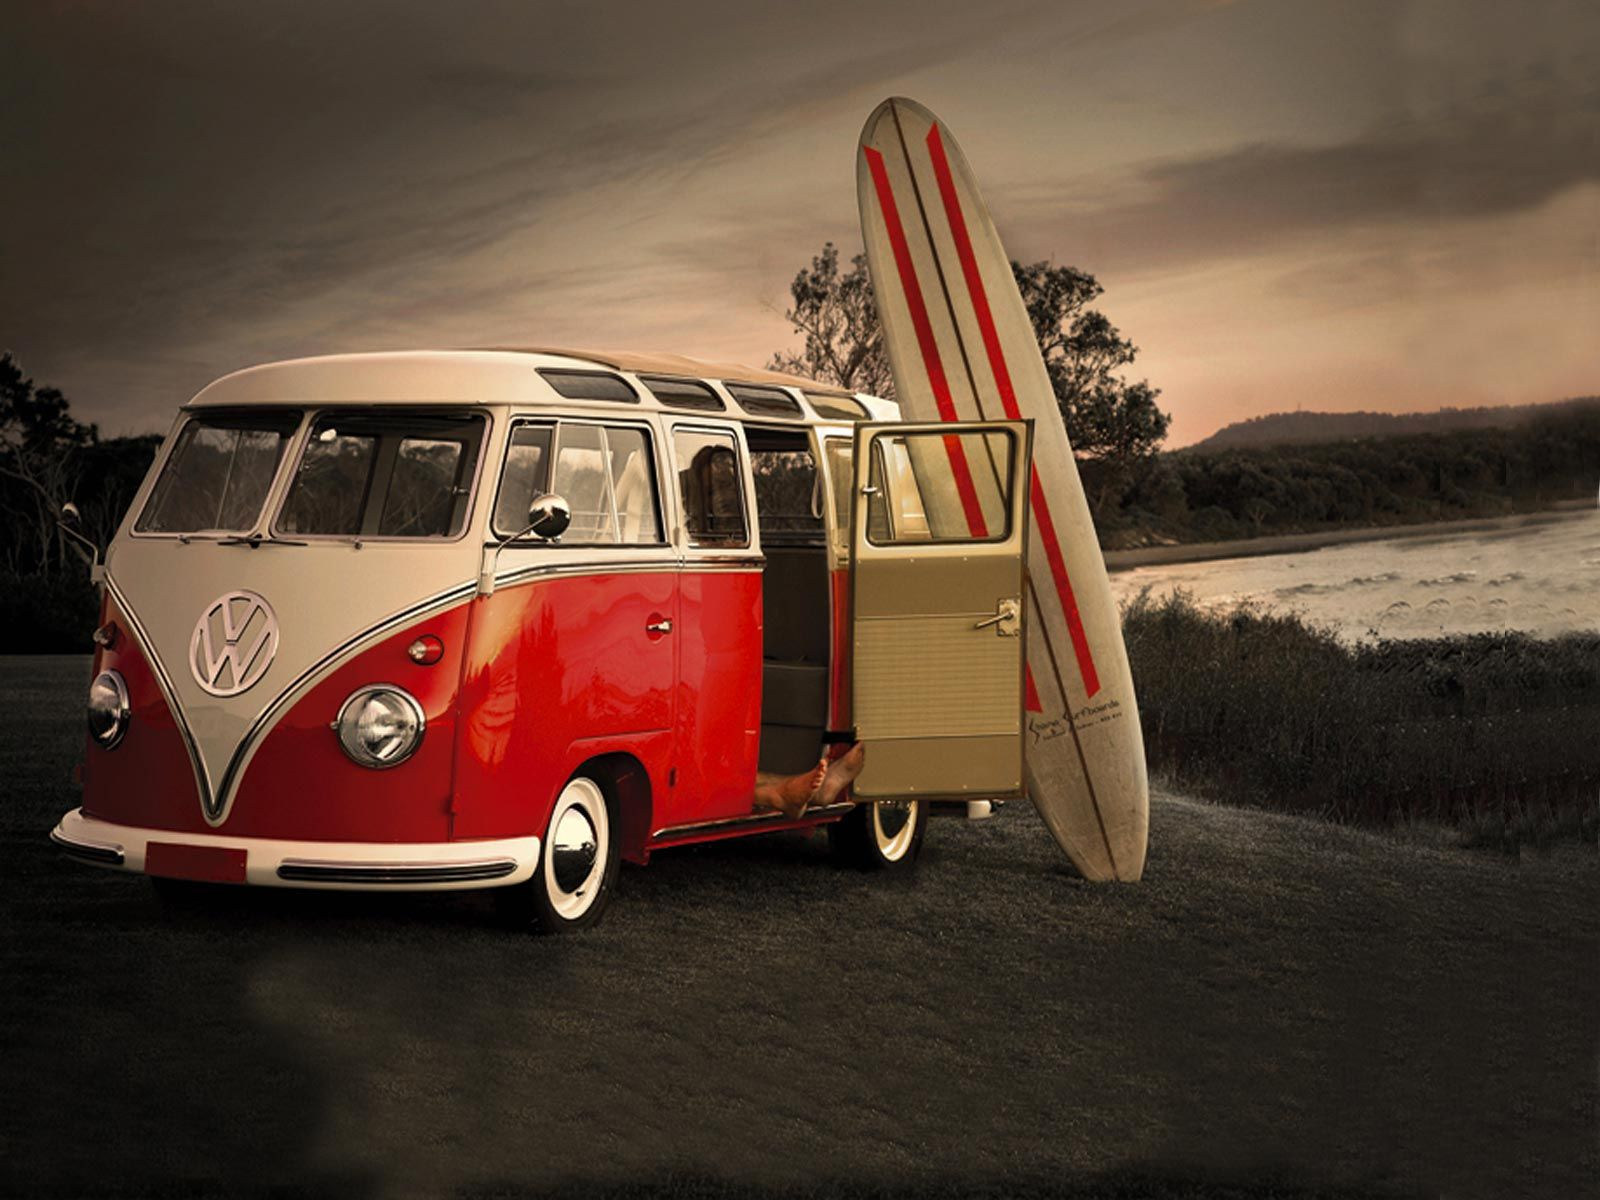 image for hd volkswagen combi surf classic volkswagen. Black Bedroom Furniture Sets. Home Design Ideas